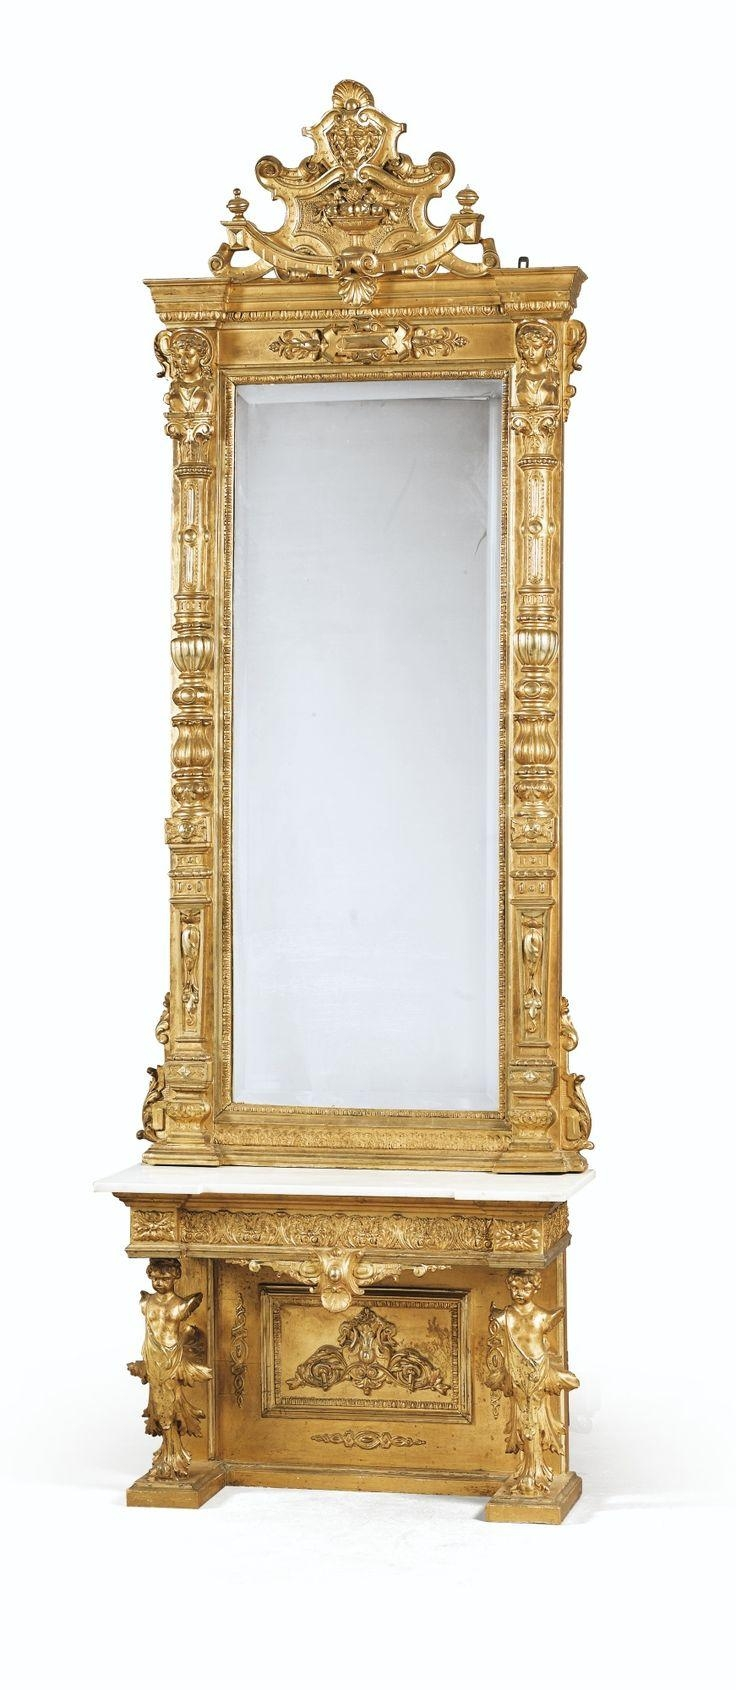 1091 Best Classic Gilded Mirrors Images On Pinterest | Antique In Victorian Style Mirrors (View 10 of 20)